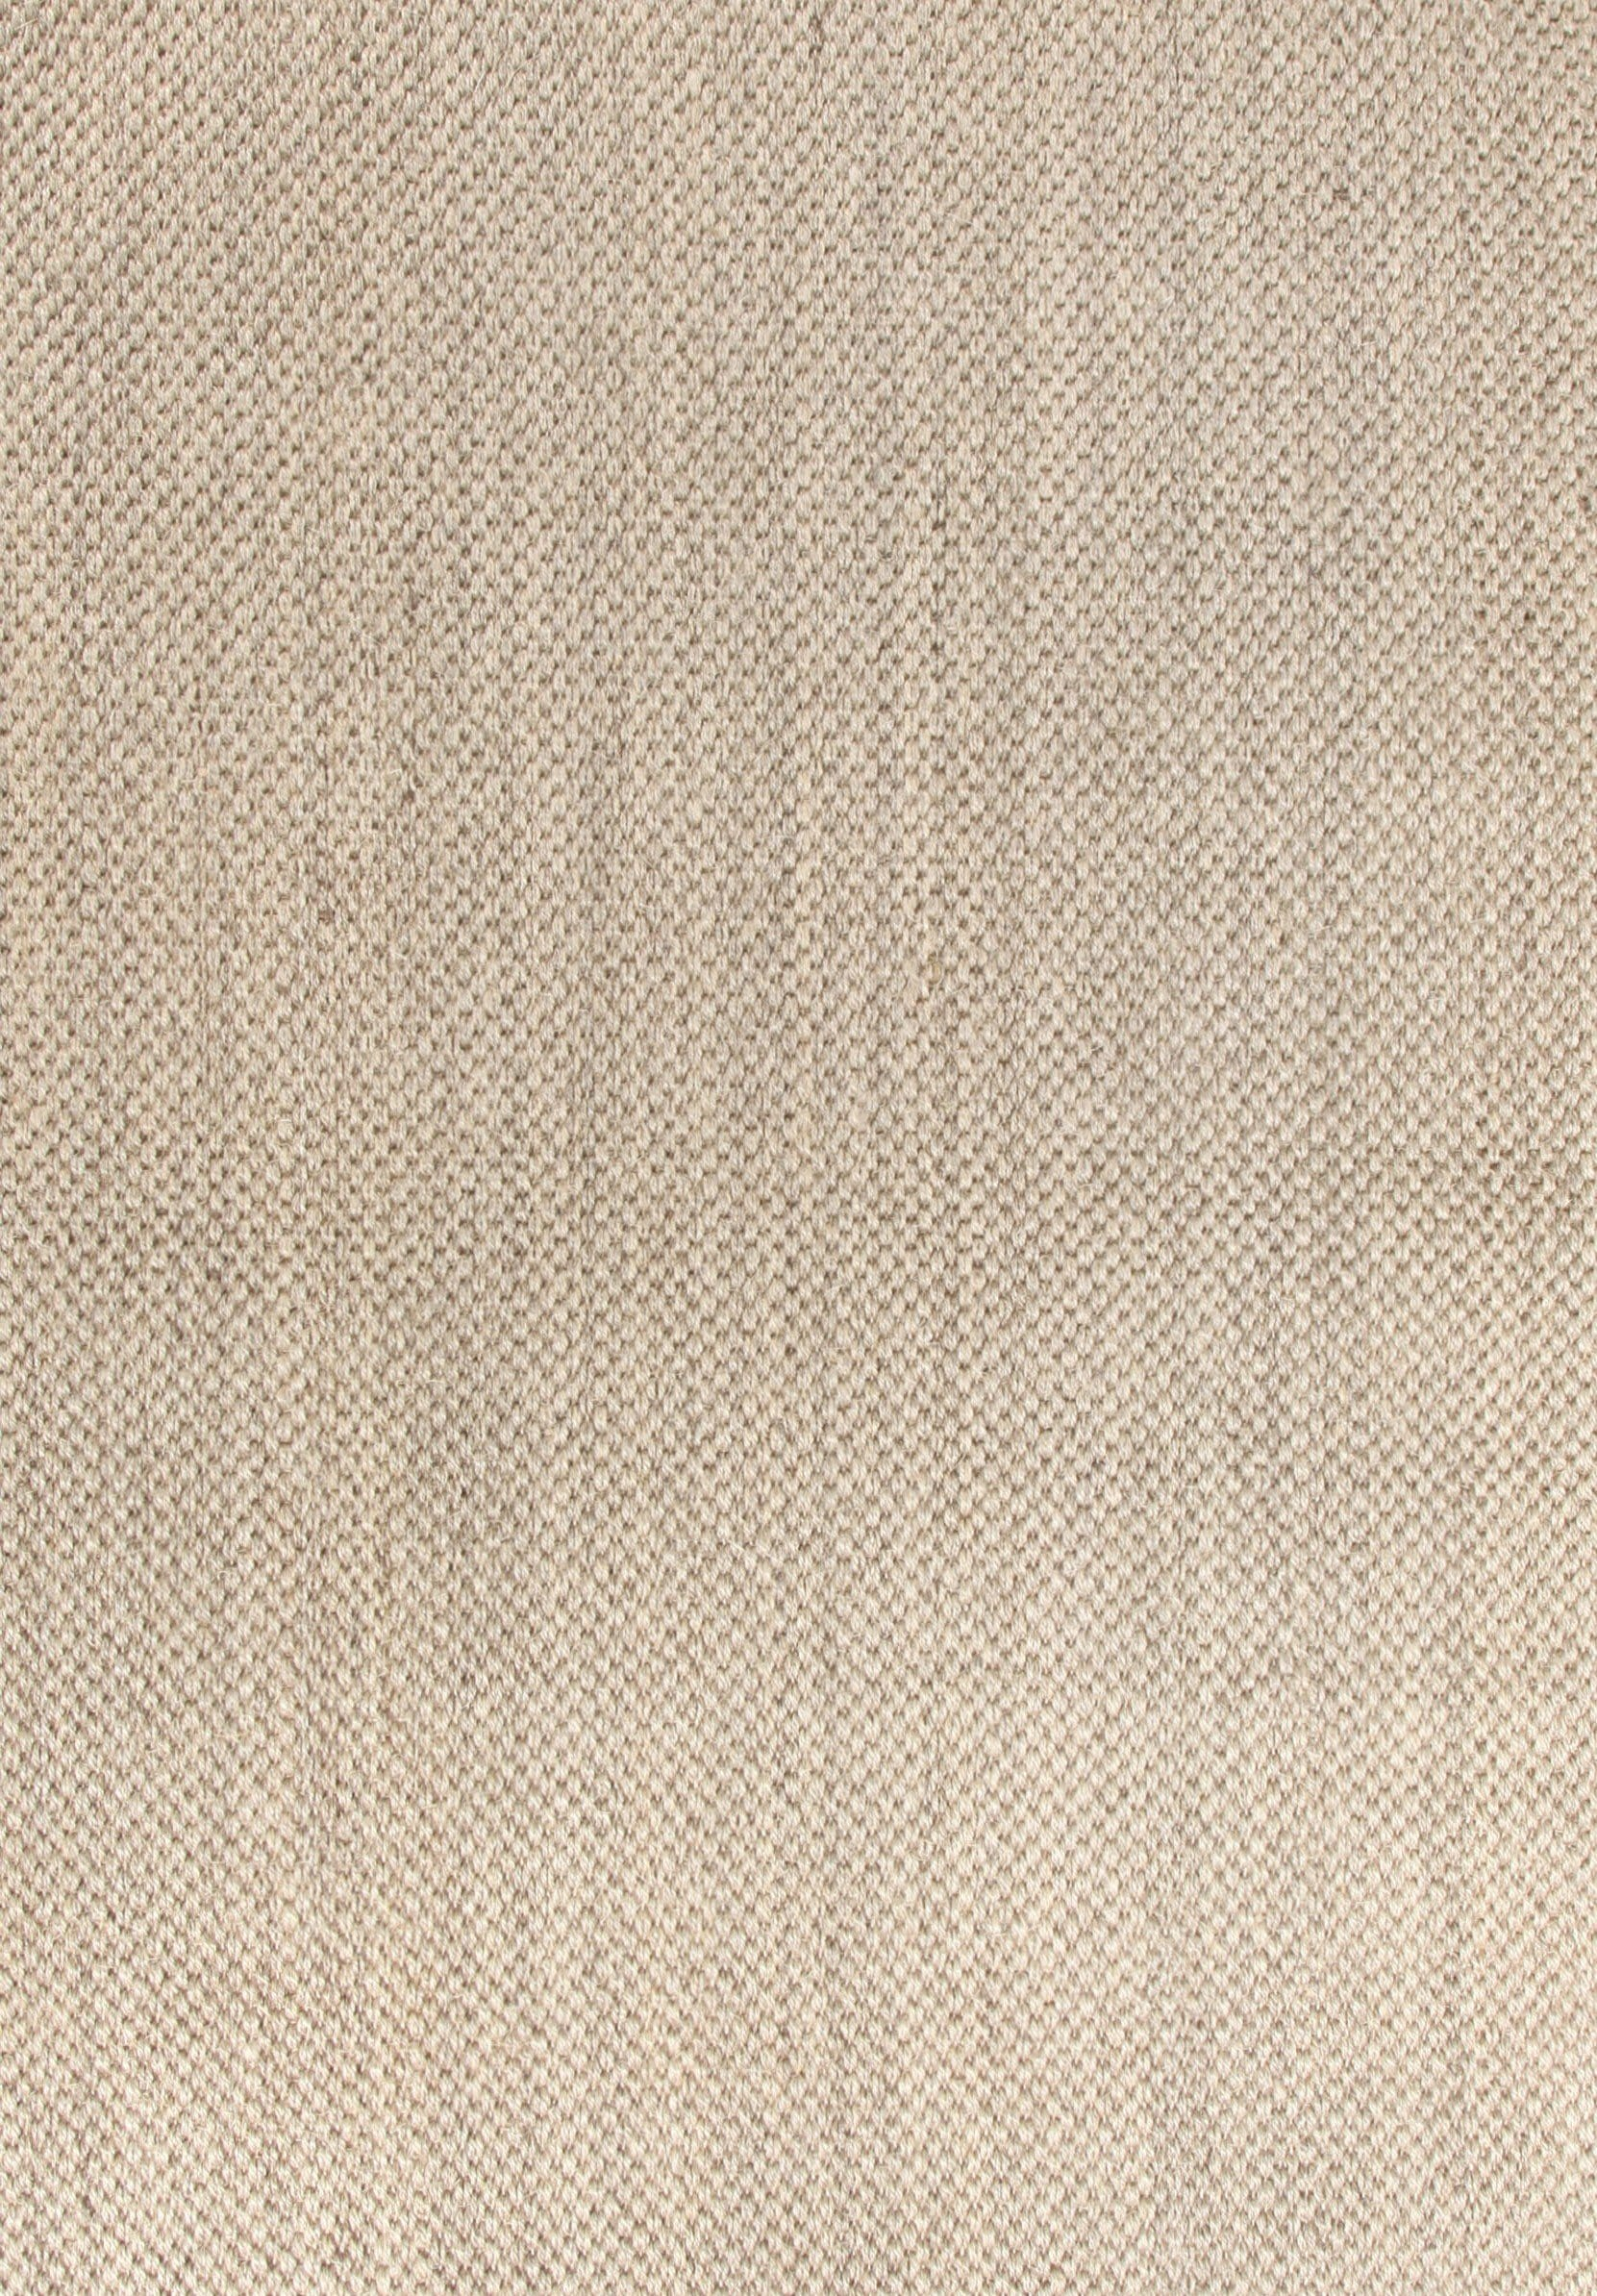 Belongil Light Beige Natural Fibre Sisal Boucl 233 Eco